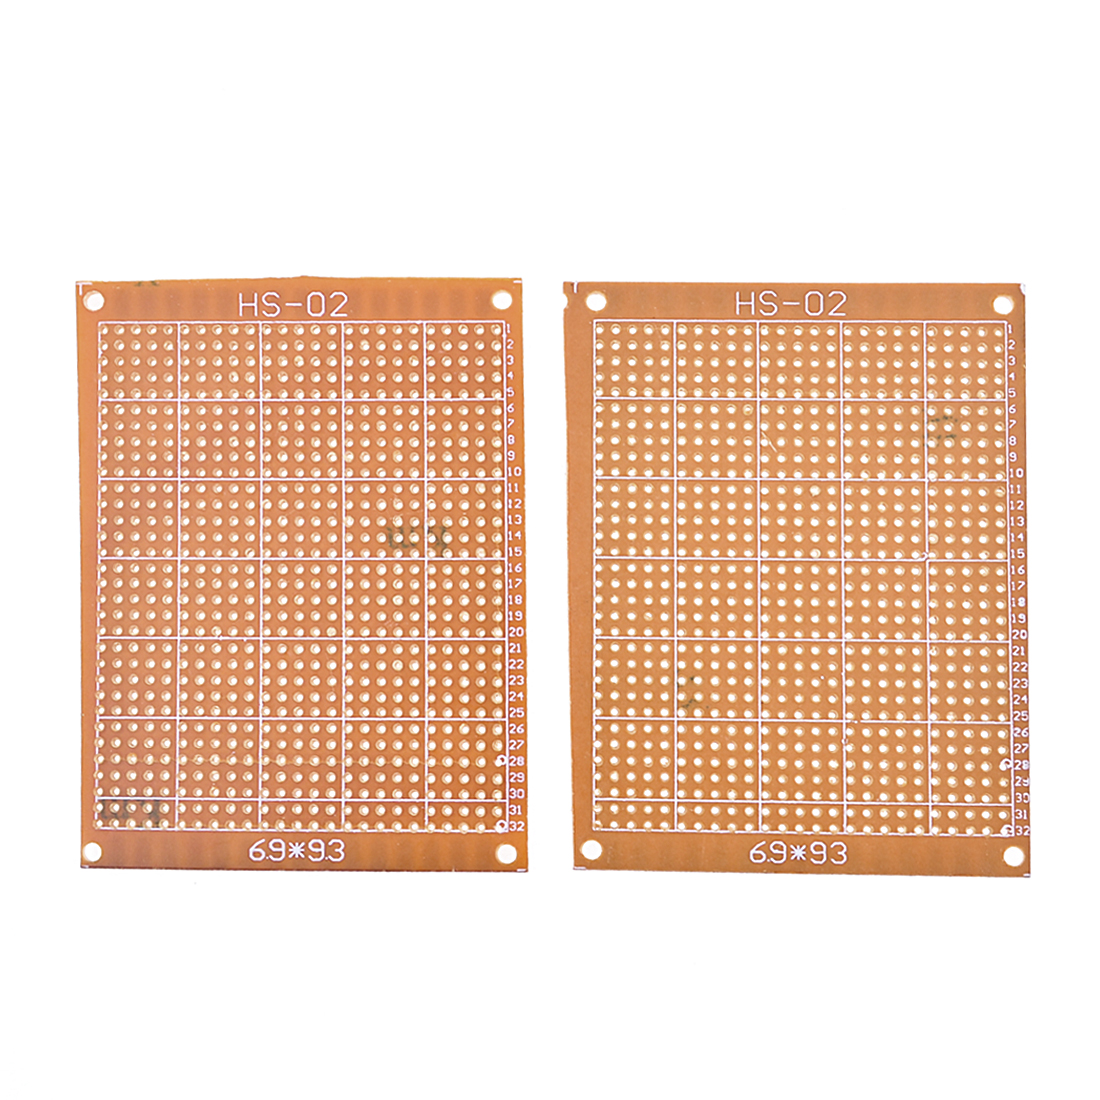 2pcs Prototype Single Side Tinned Universal PCB Circuit Board 6.9x9.3cm